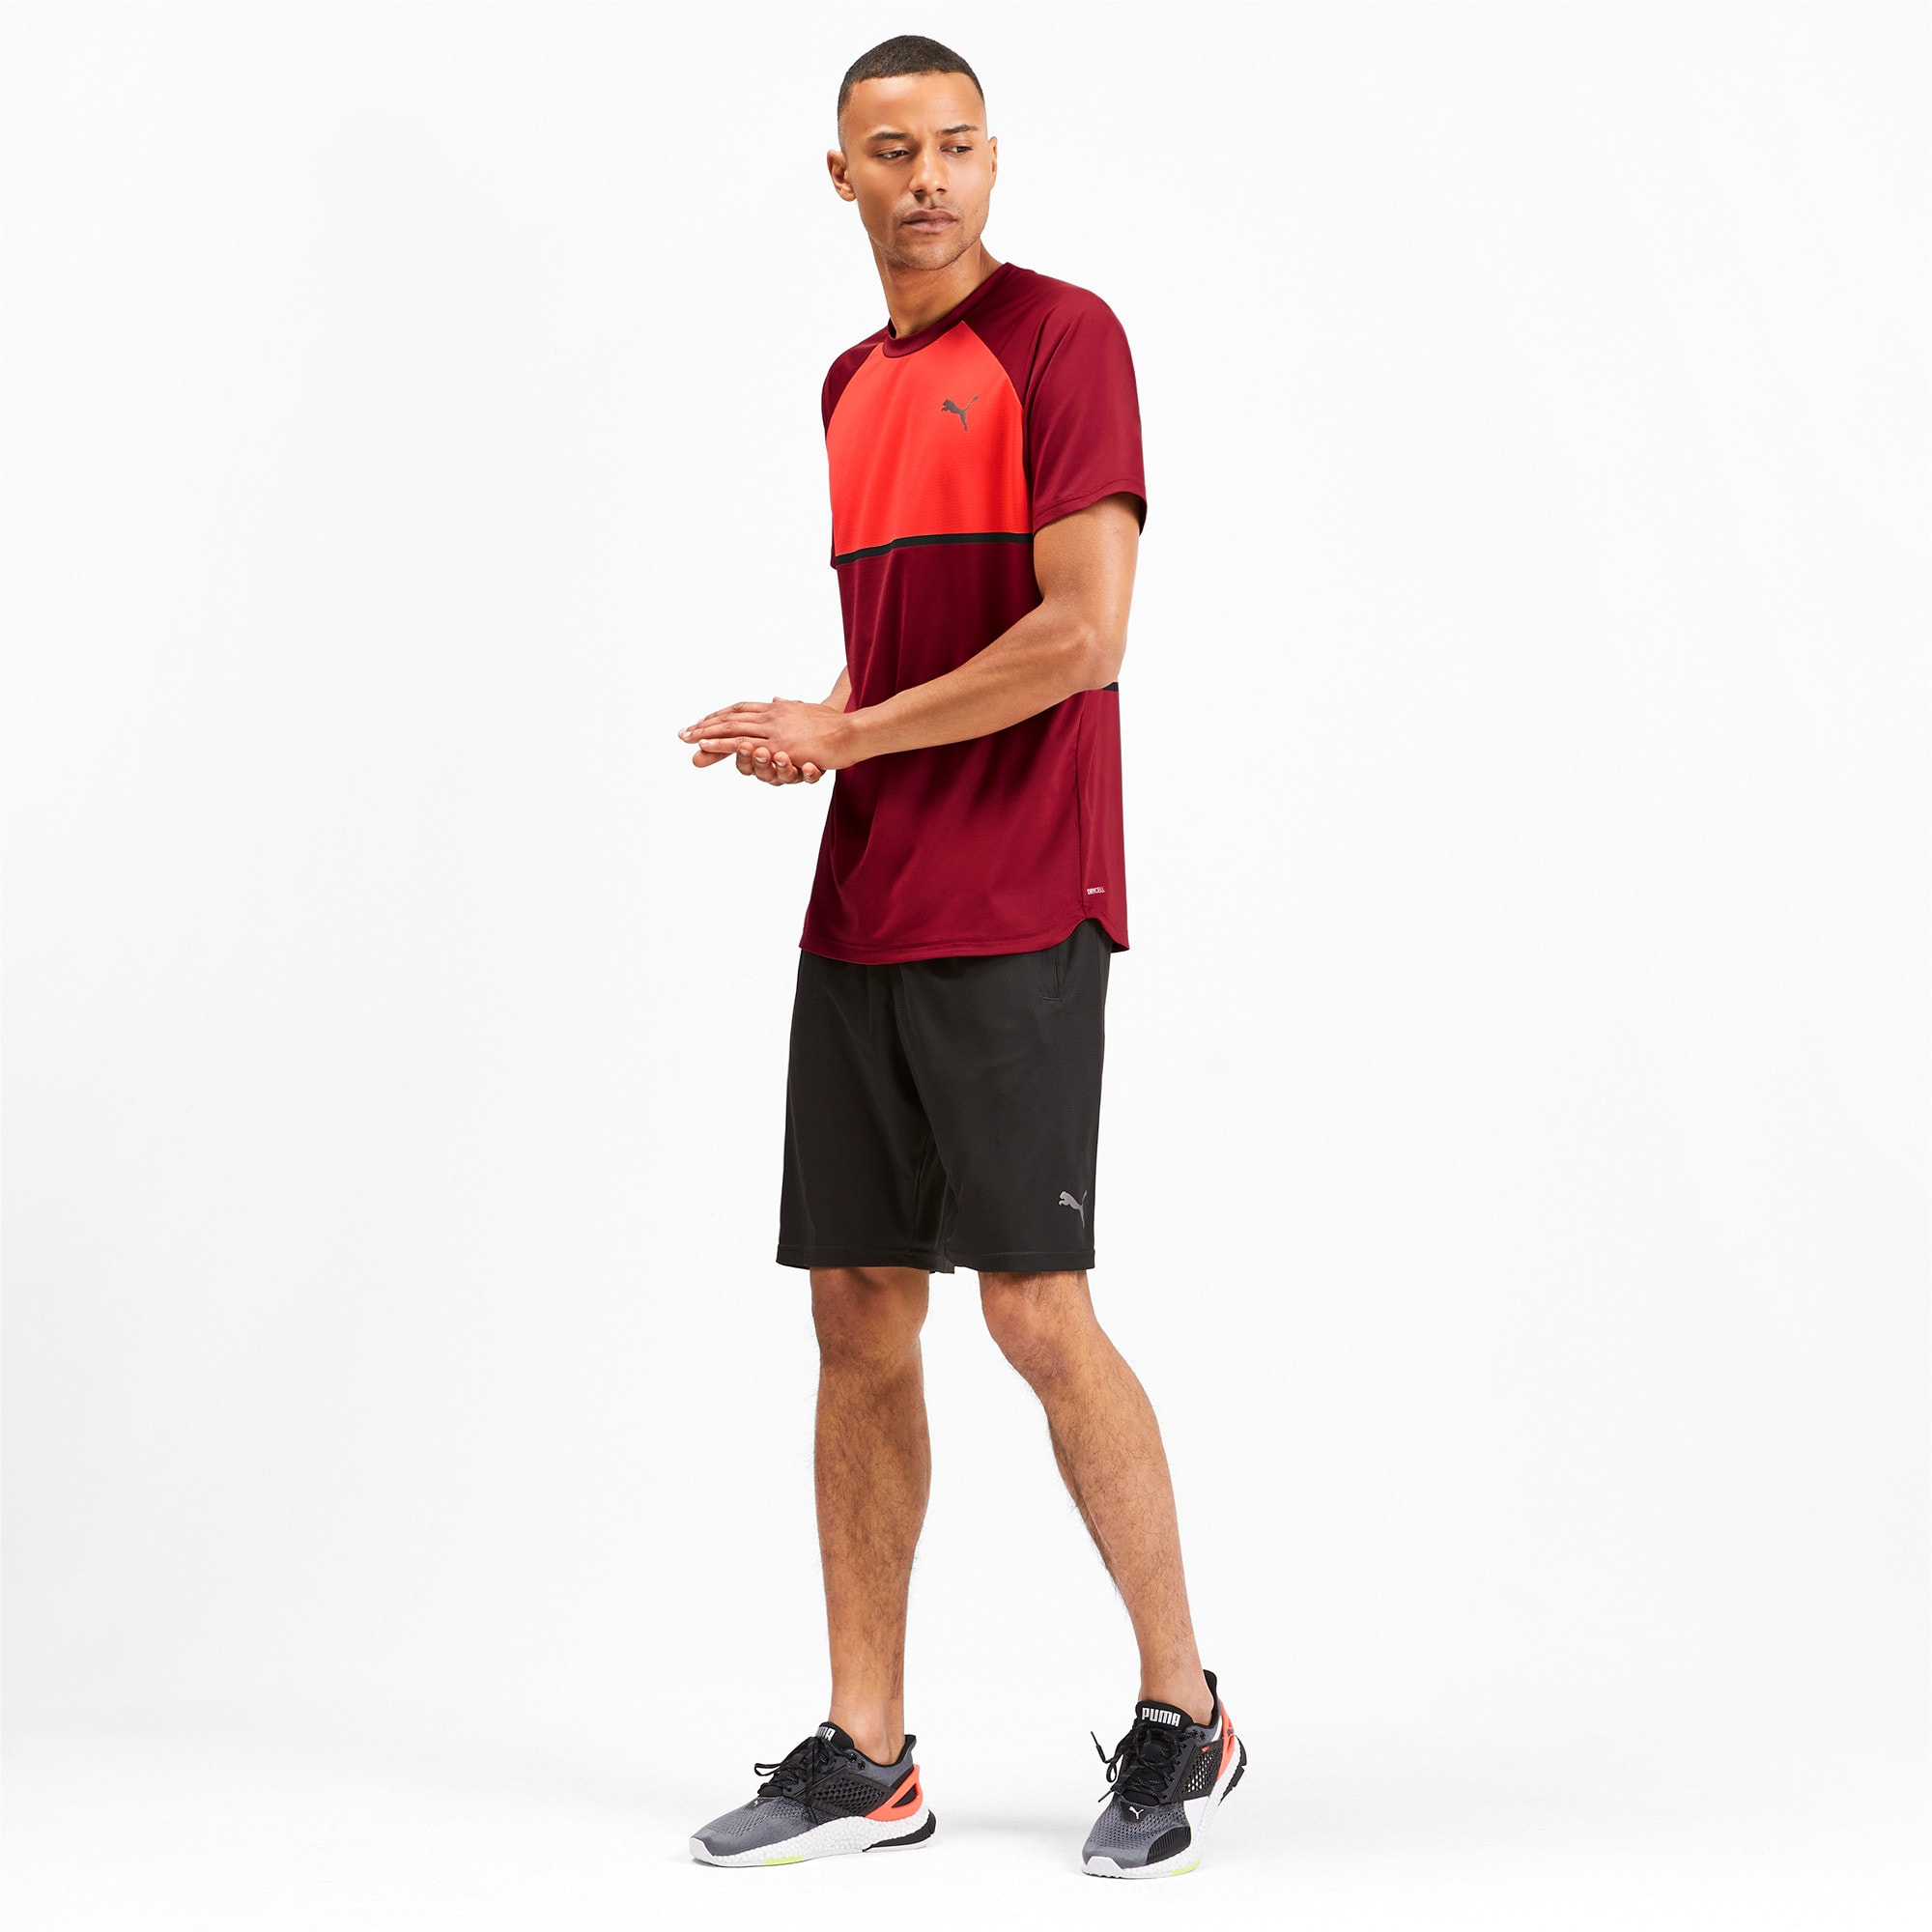 Thumbnail 3 of Power BND Men's Tee, Rhubarb-Nrgy Red, medium